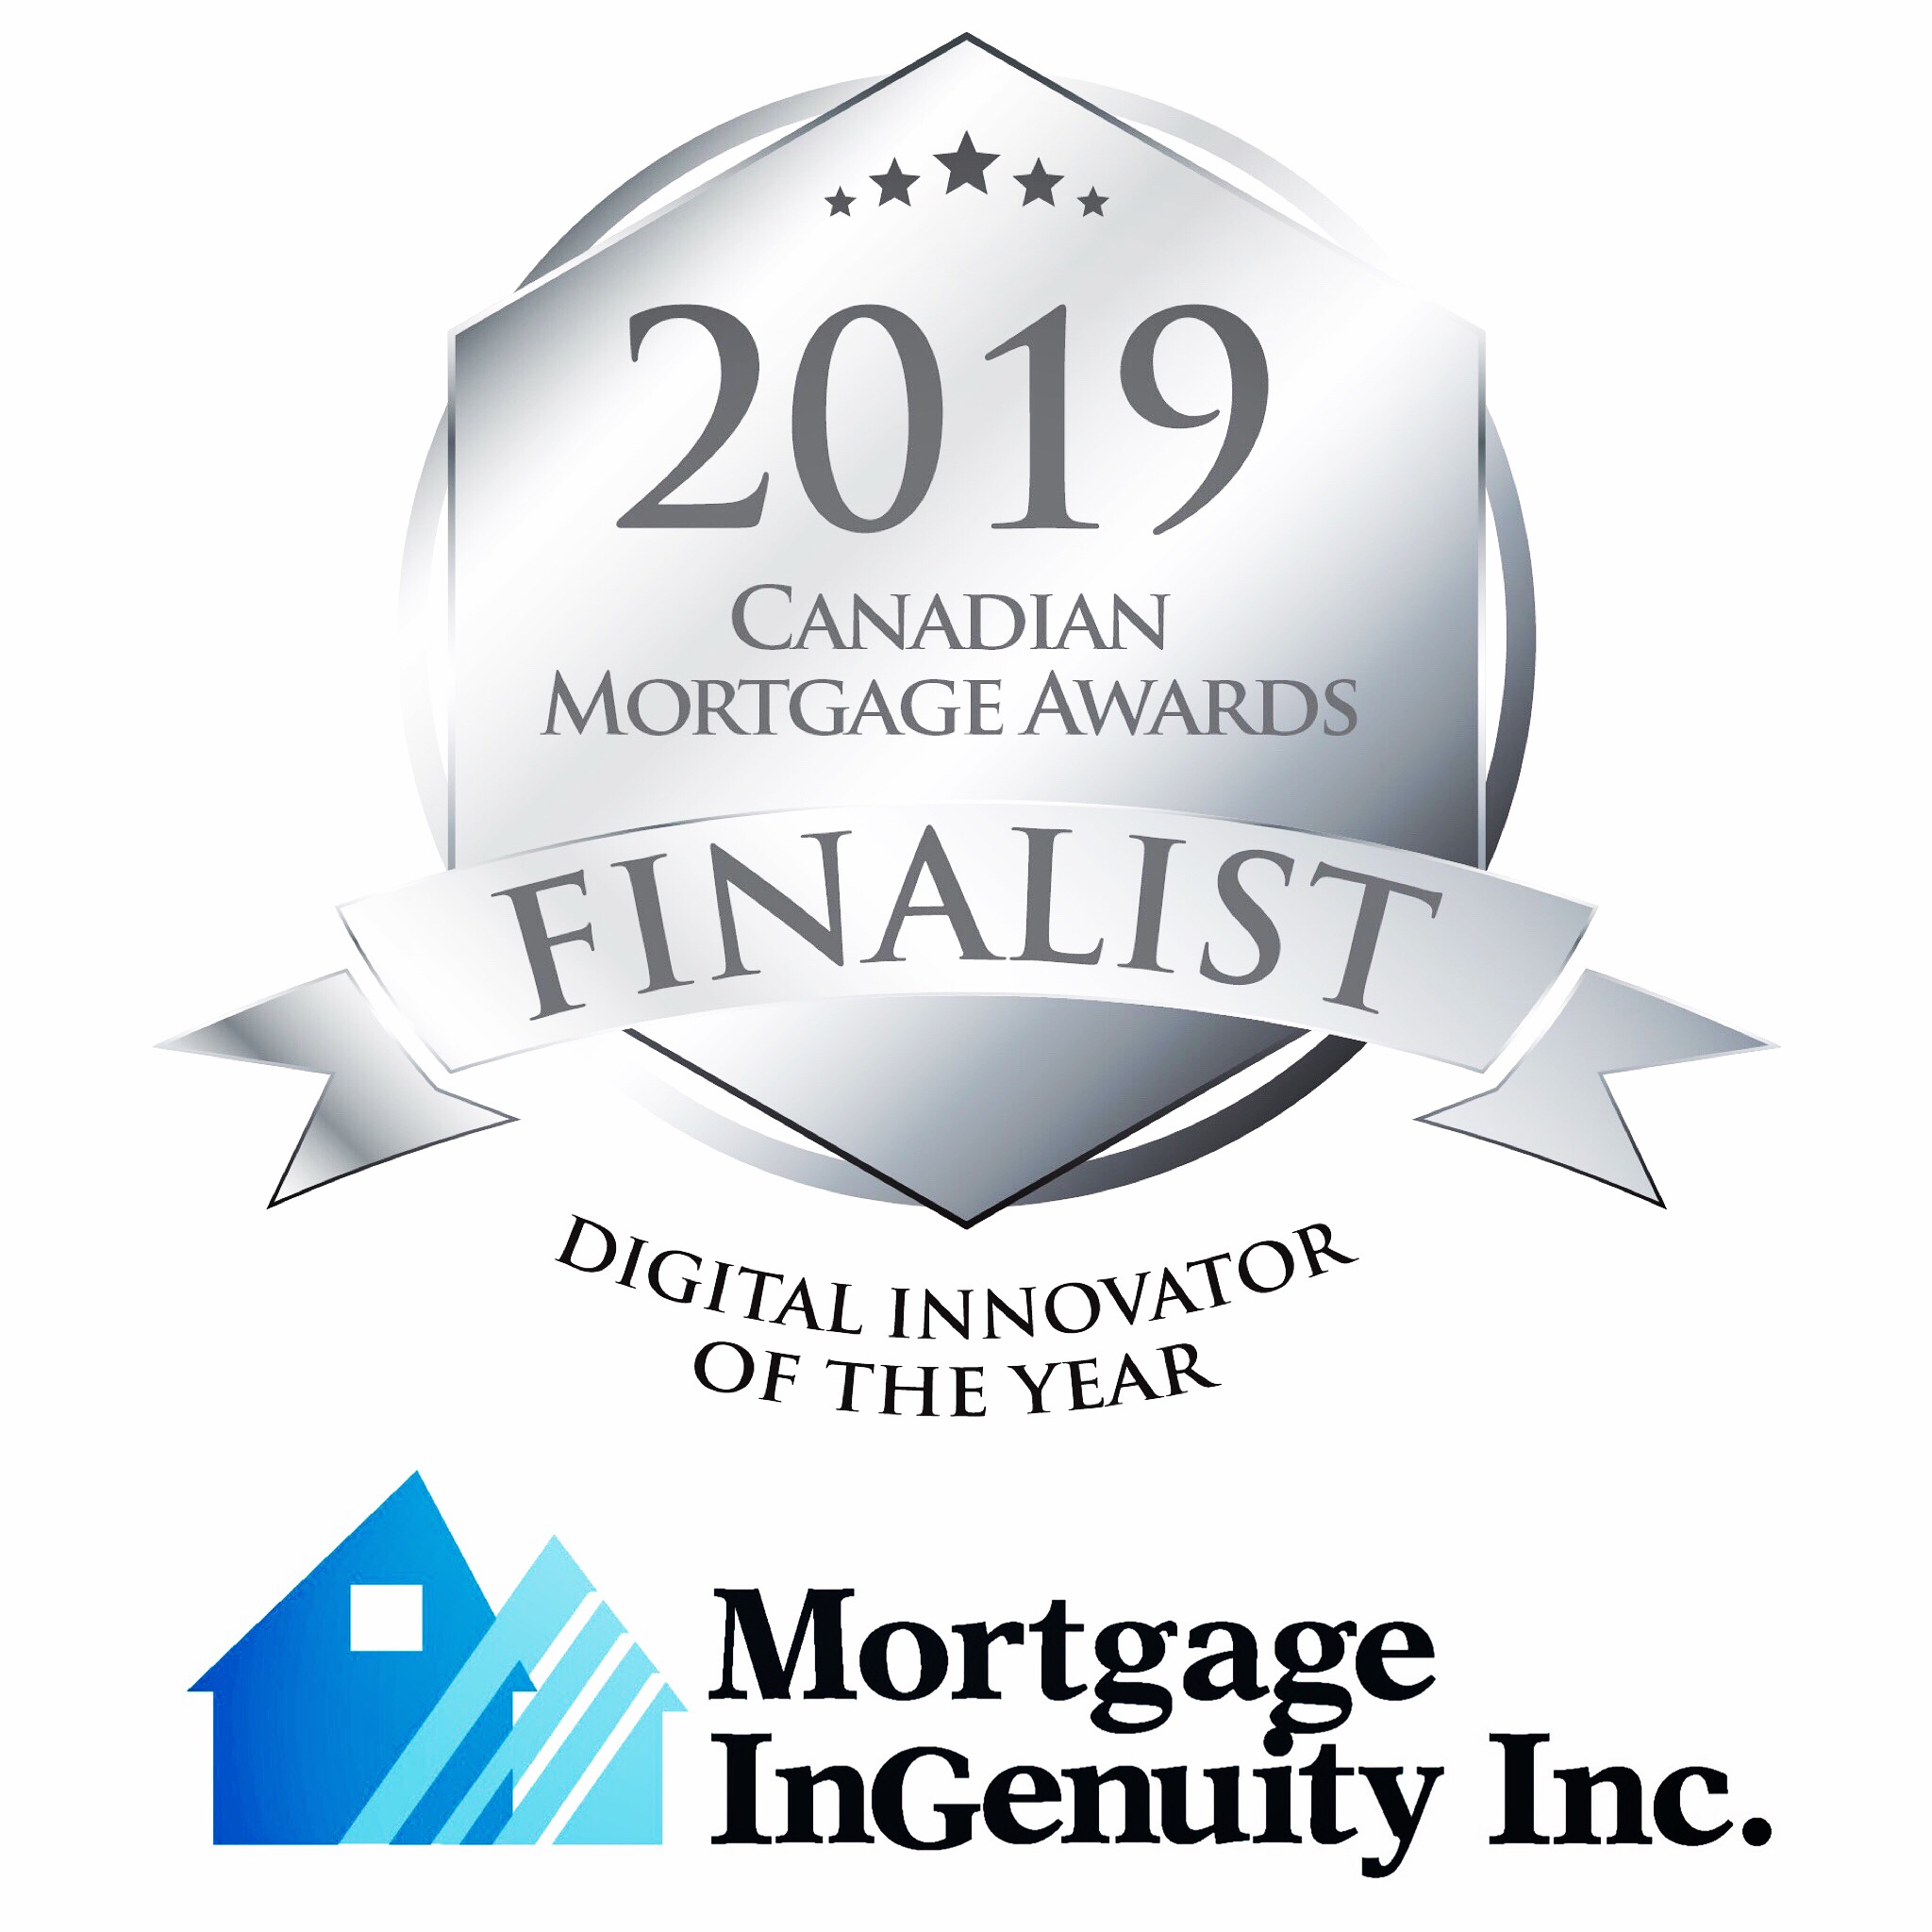 Mortgage InGenuity 2019 Finalist for Digital Innovator of the Year by the Canadian Mortgage Awards